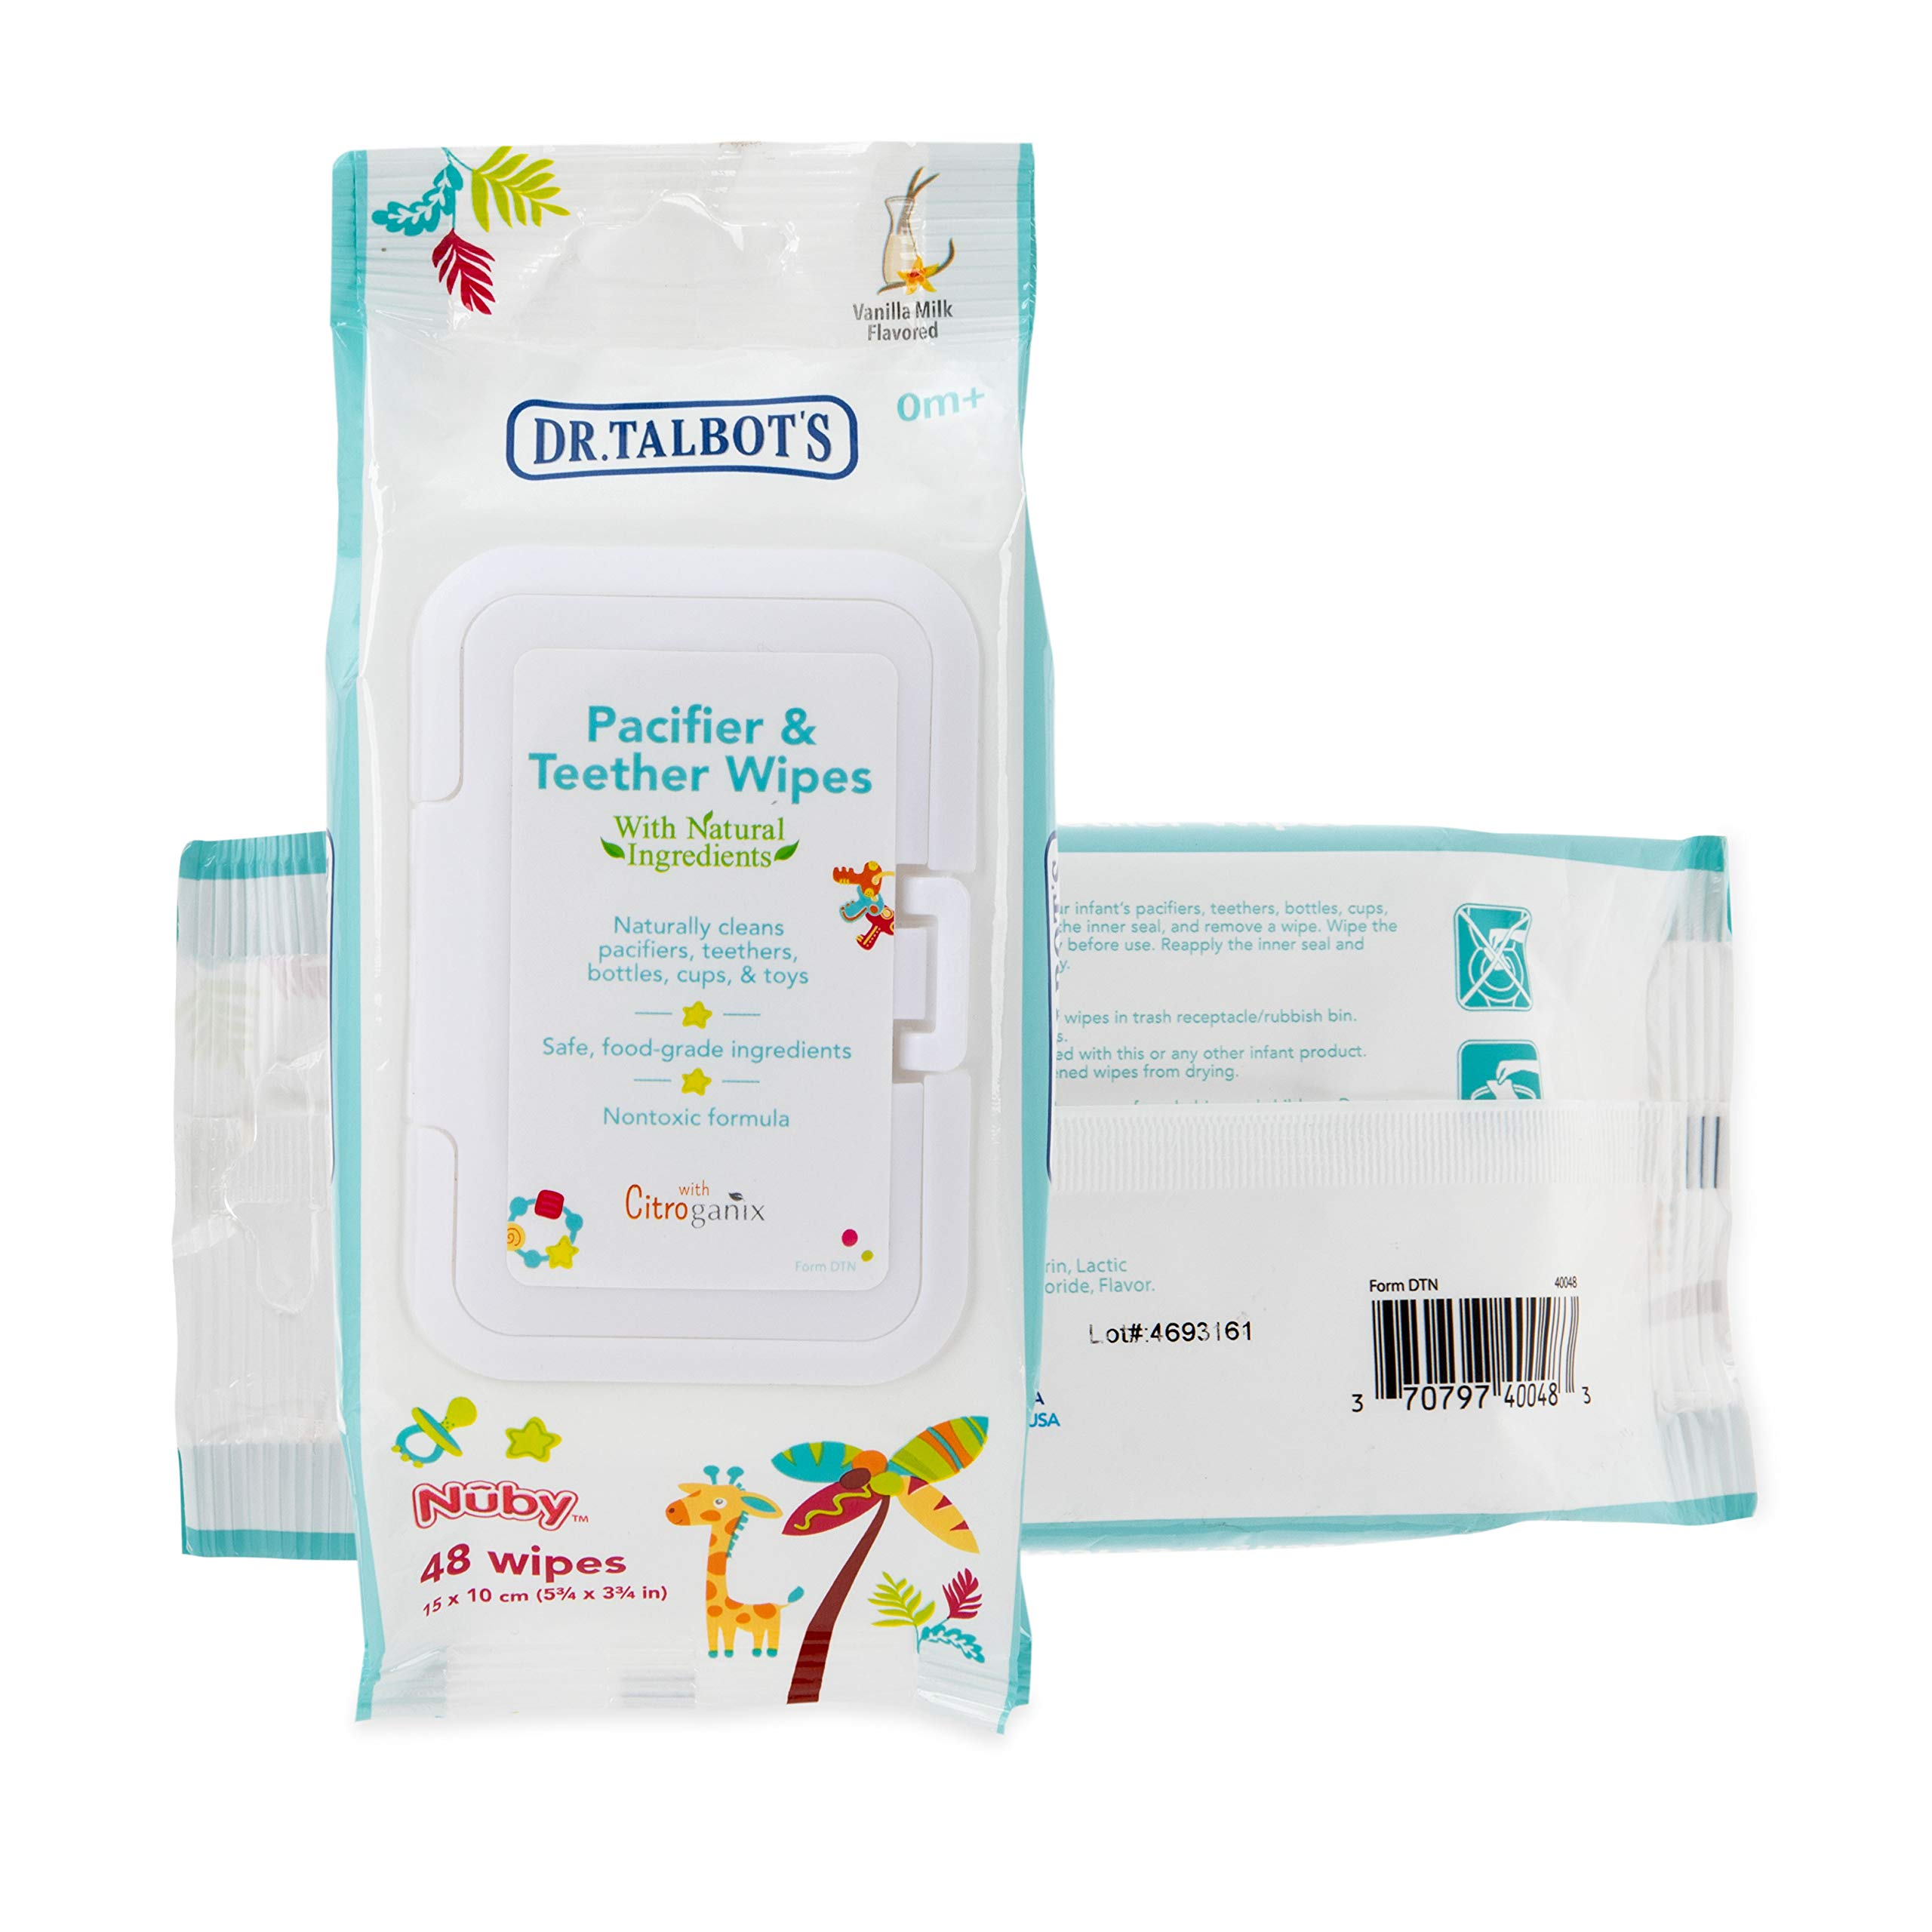 Dr. Talbot's Pacifier and Teether Wipes Naturally Inspired with Citroganix, Vanilla Milk (Pack of 2, 96 Count)